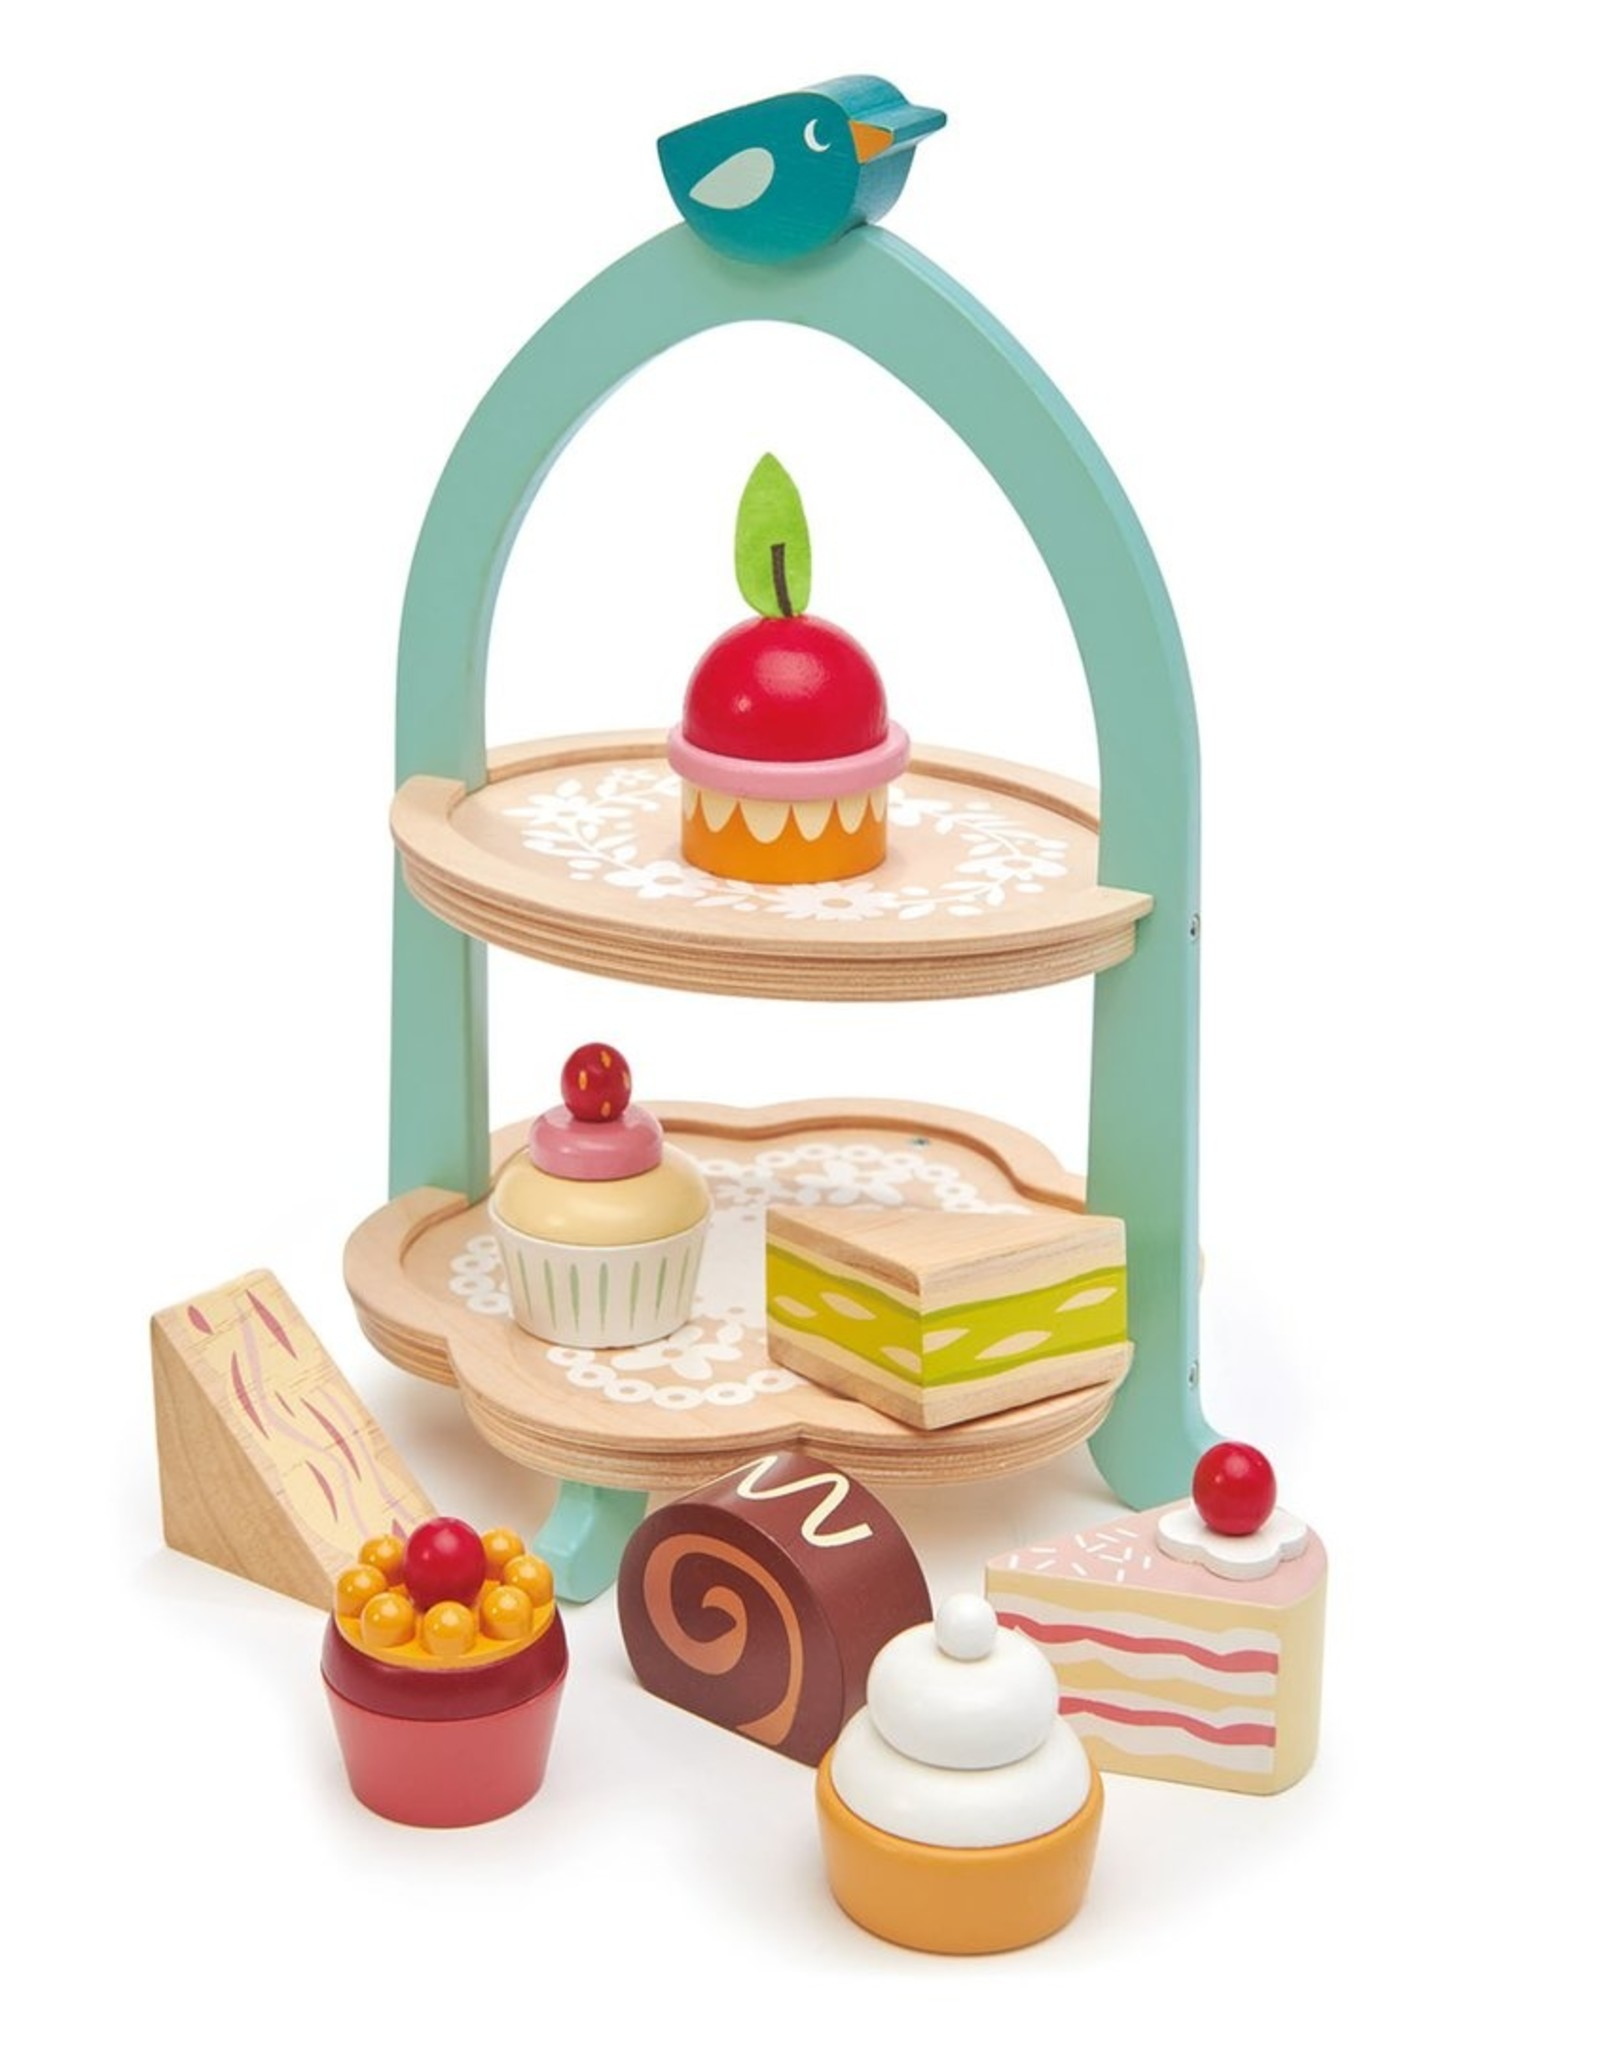 Tender leaf toys Birdie Afternoon Tea Stand